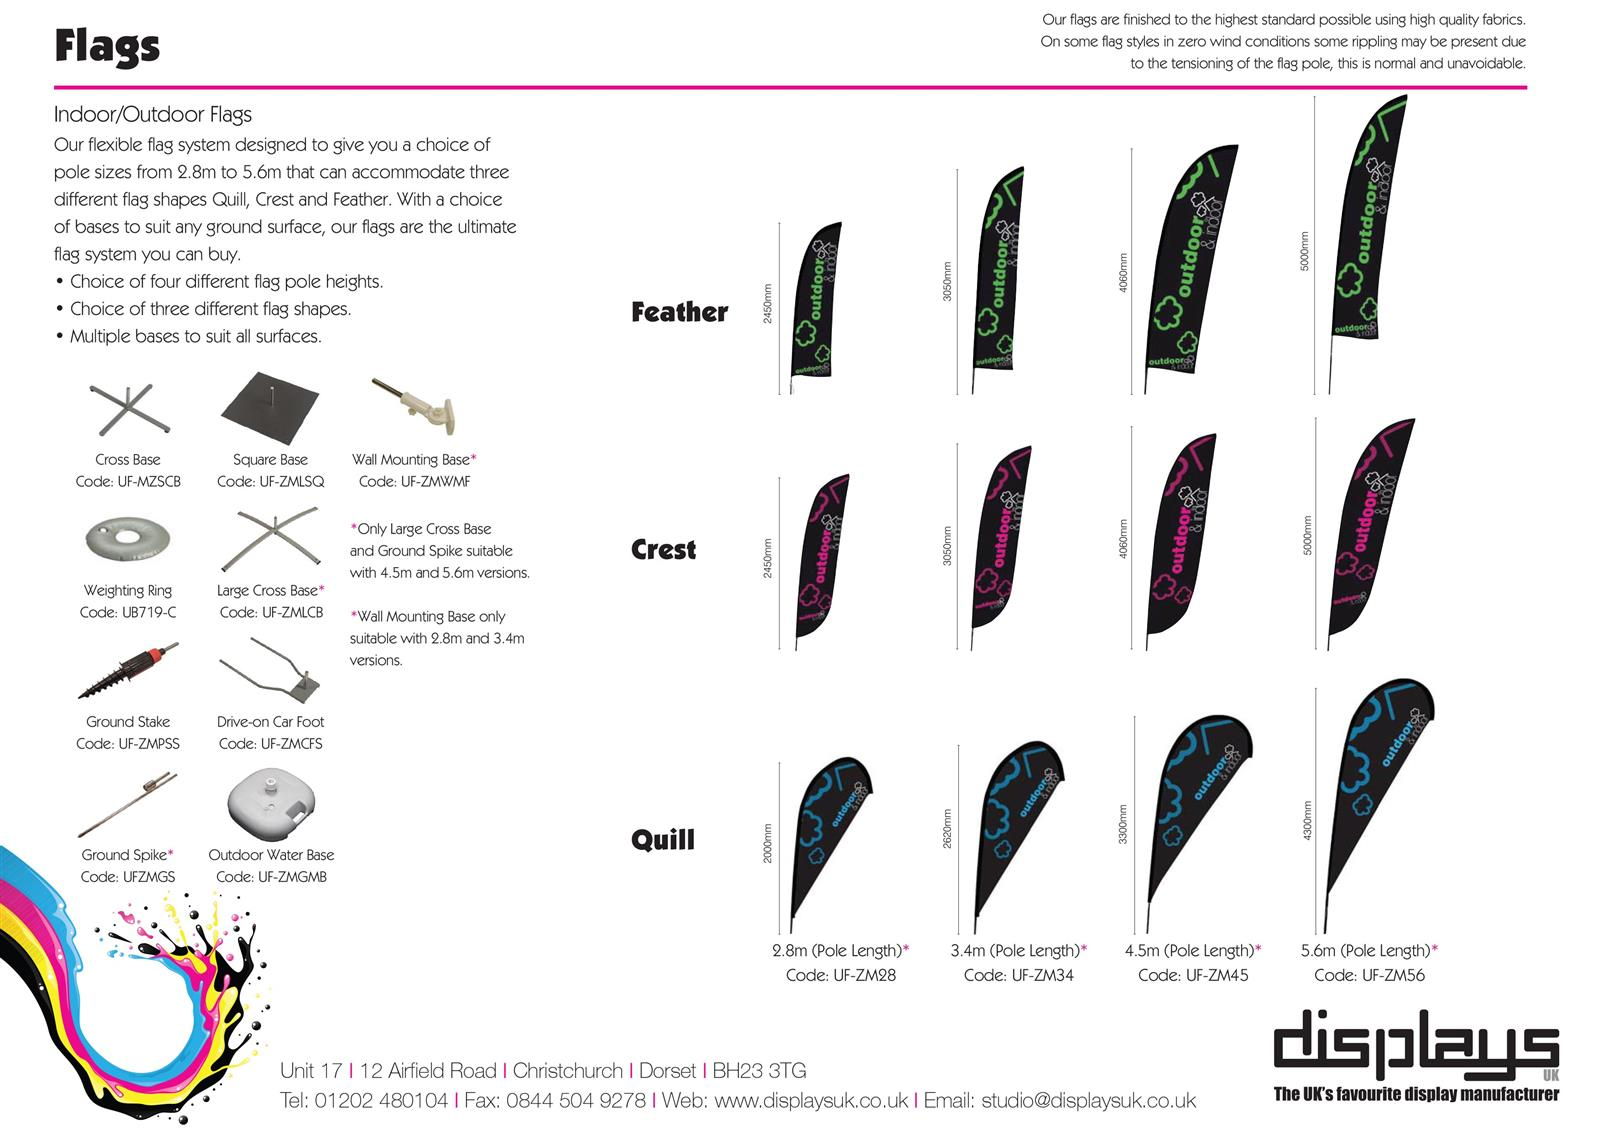 Quill Teardrop Outdoor Flags. S, M, L and XL